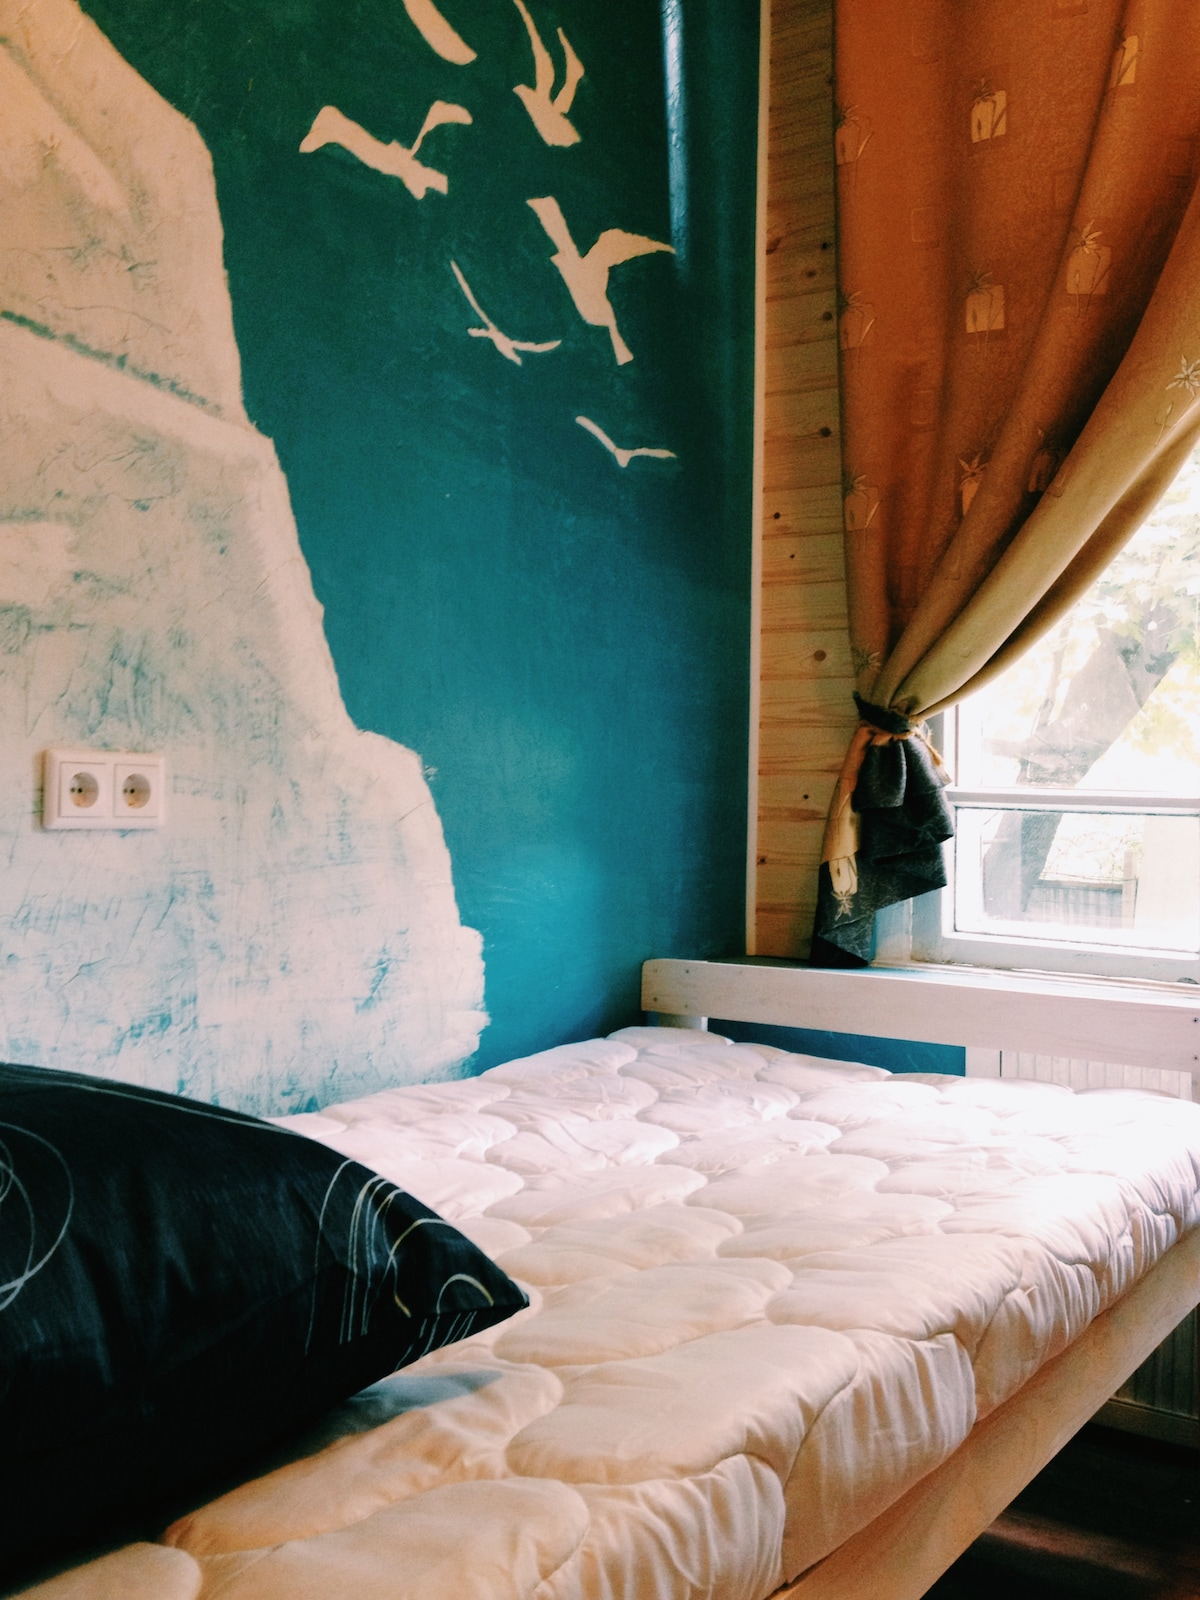 Guesthouse for travellers. Join!